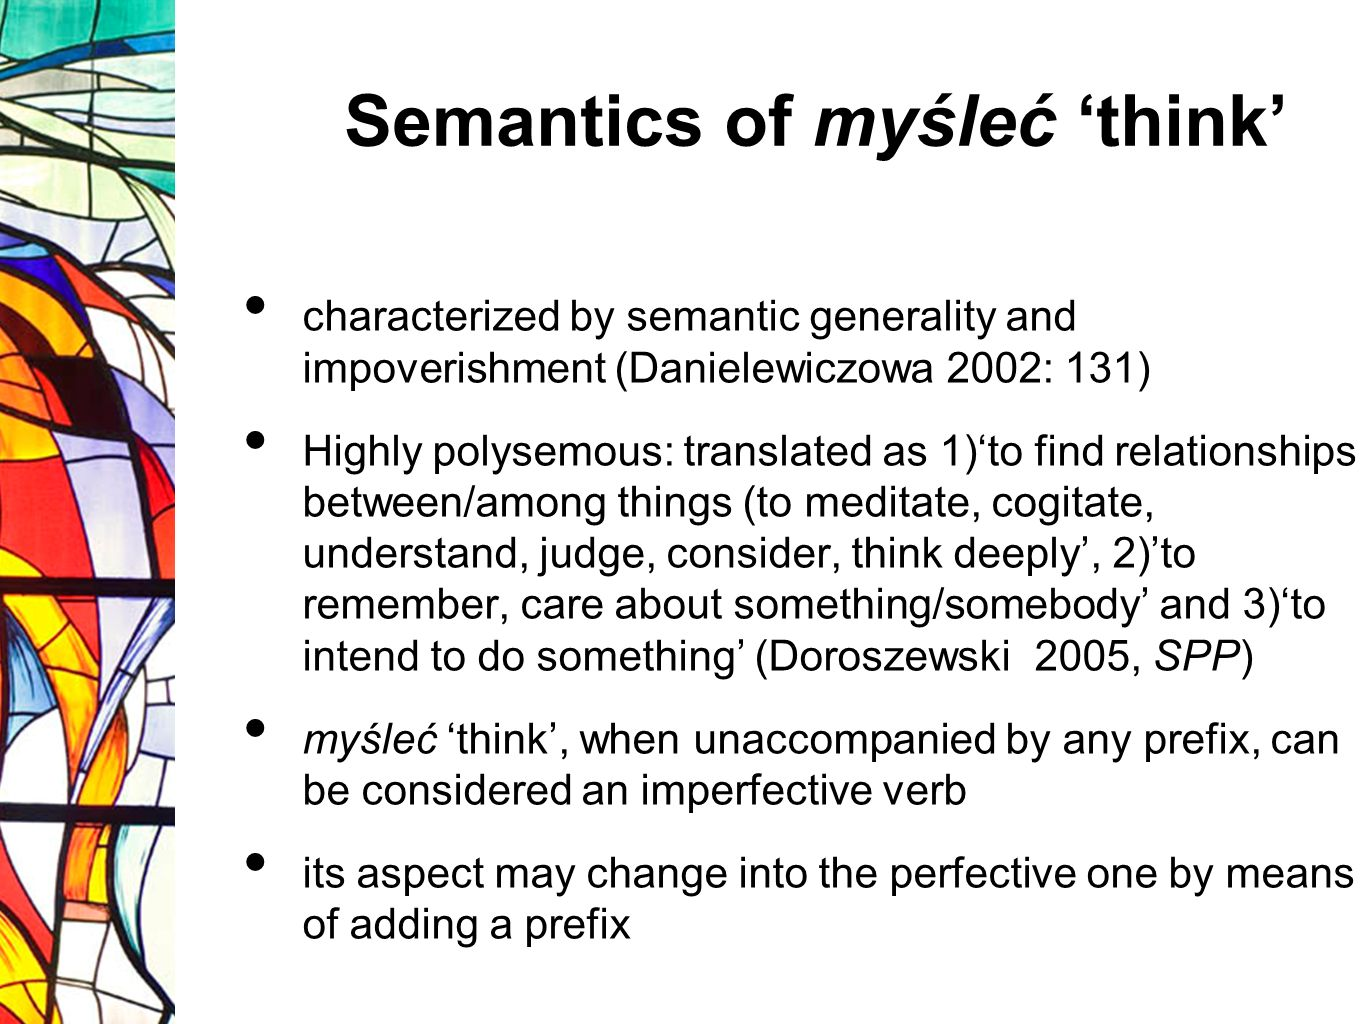 Aspect in Polish It is obligatorily expressed by all verb forms, regardless of tense or other grammatical categories, marked by a system of aspectual affixes (prefixes and suffixes) A system of Prefectivizing prefixes (po-, na-, ob-, do-, etc.) and Imperfectivizing suffixes (- a, -y/iwa, -wa, etc) is used to represent aspect Verbs with no aspectual prefixes are usually Imperfective (IMPF) e.g.